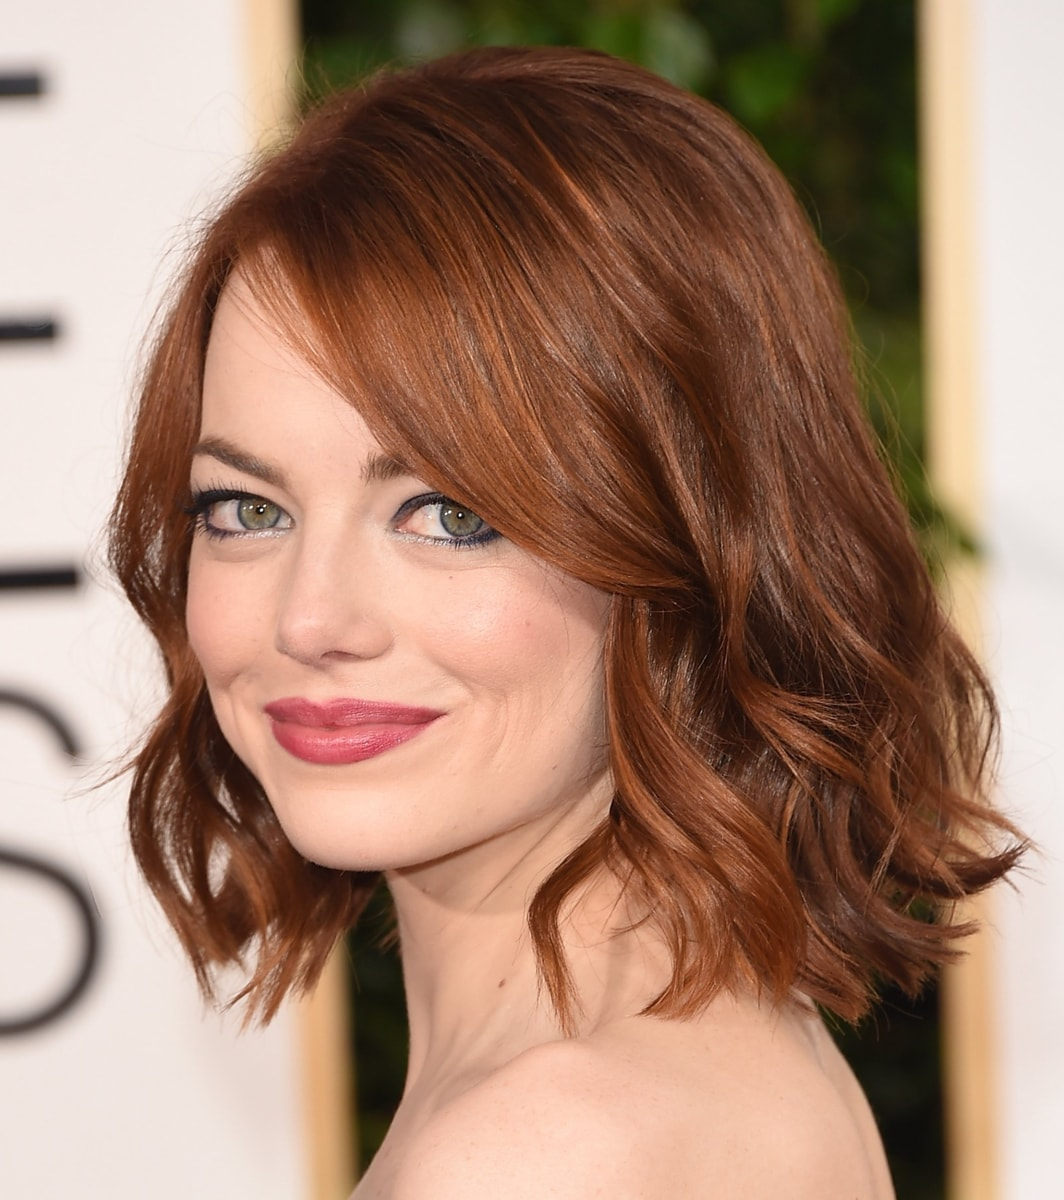 The 59 Best Celebrity Bob & Lob Haircuts - Harper's BAZAAR